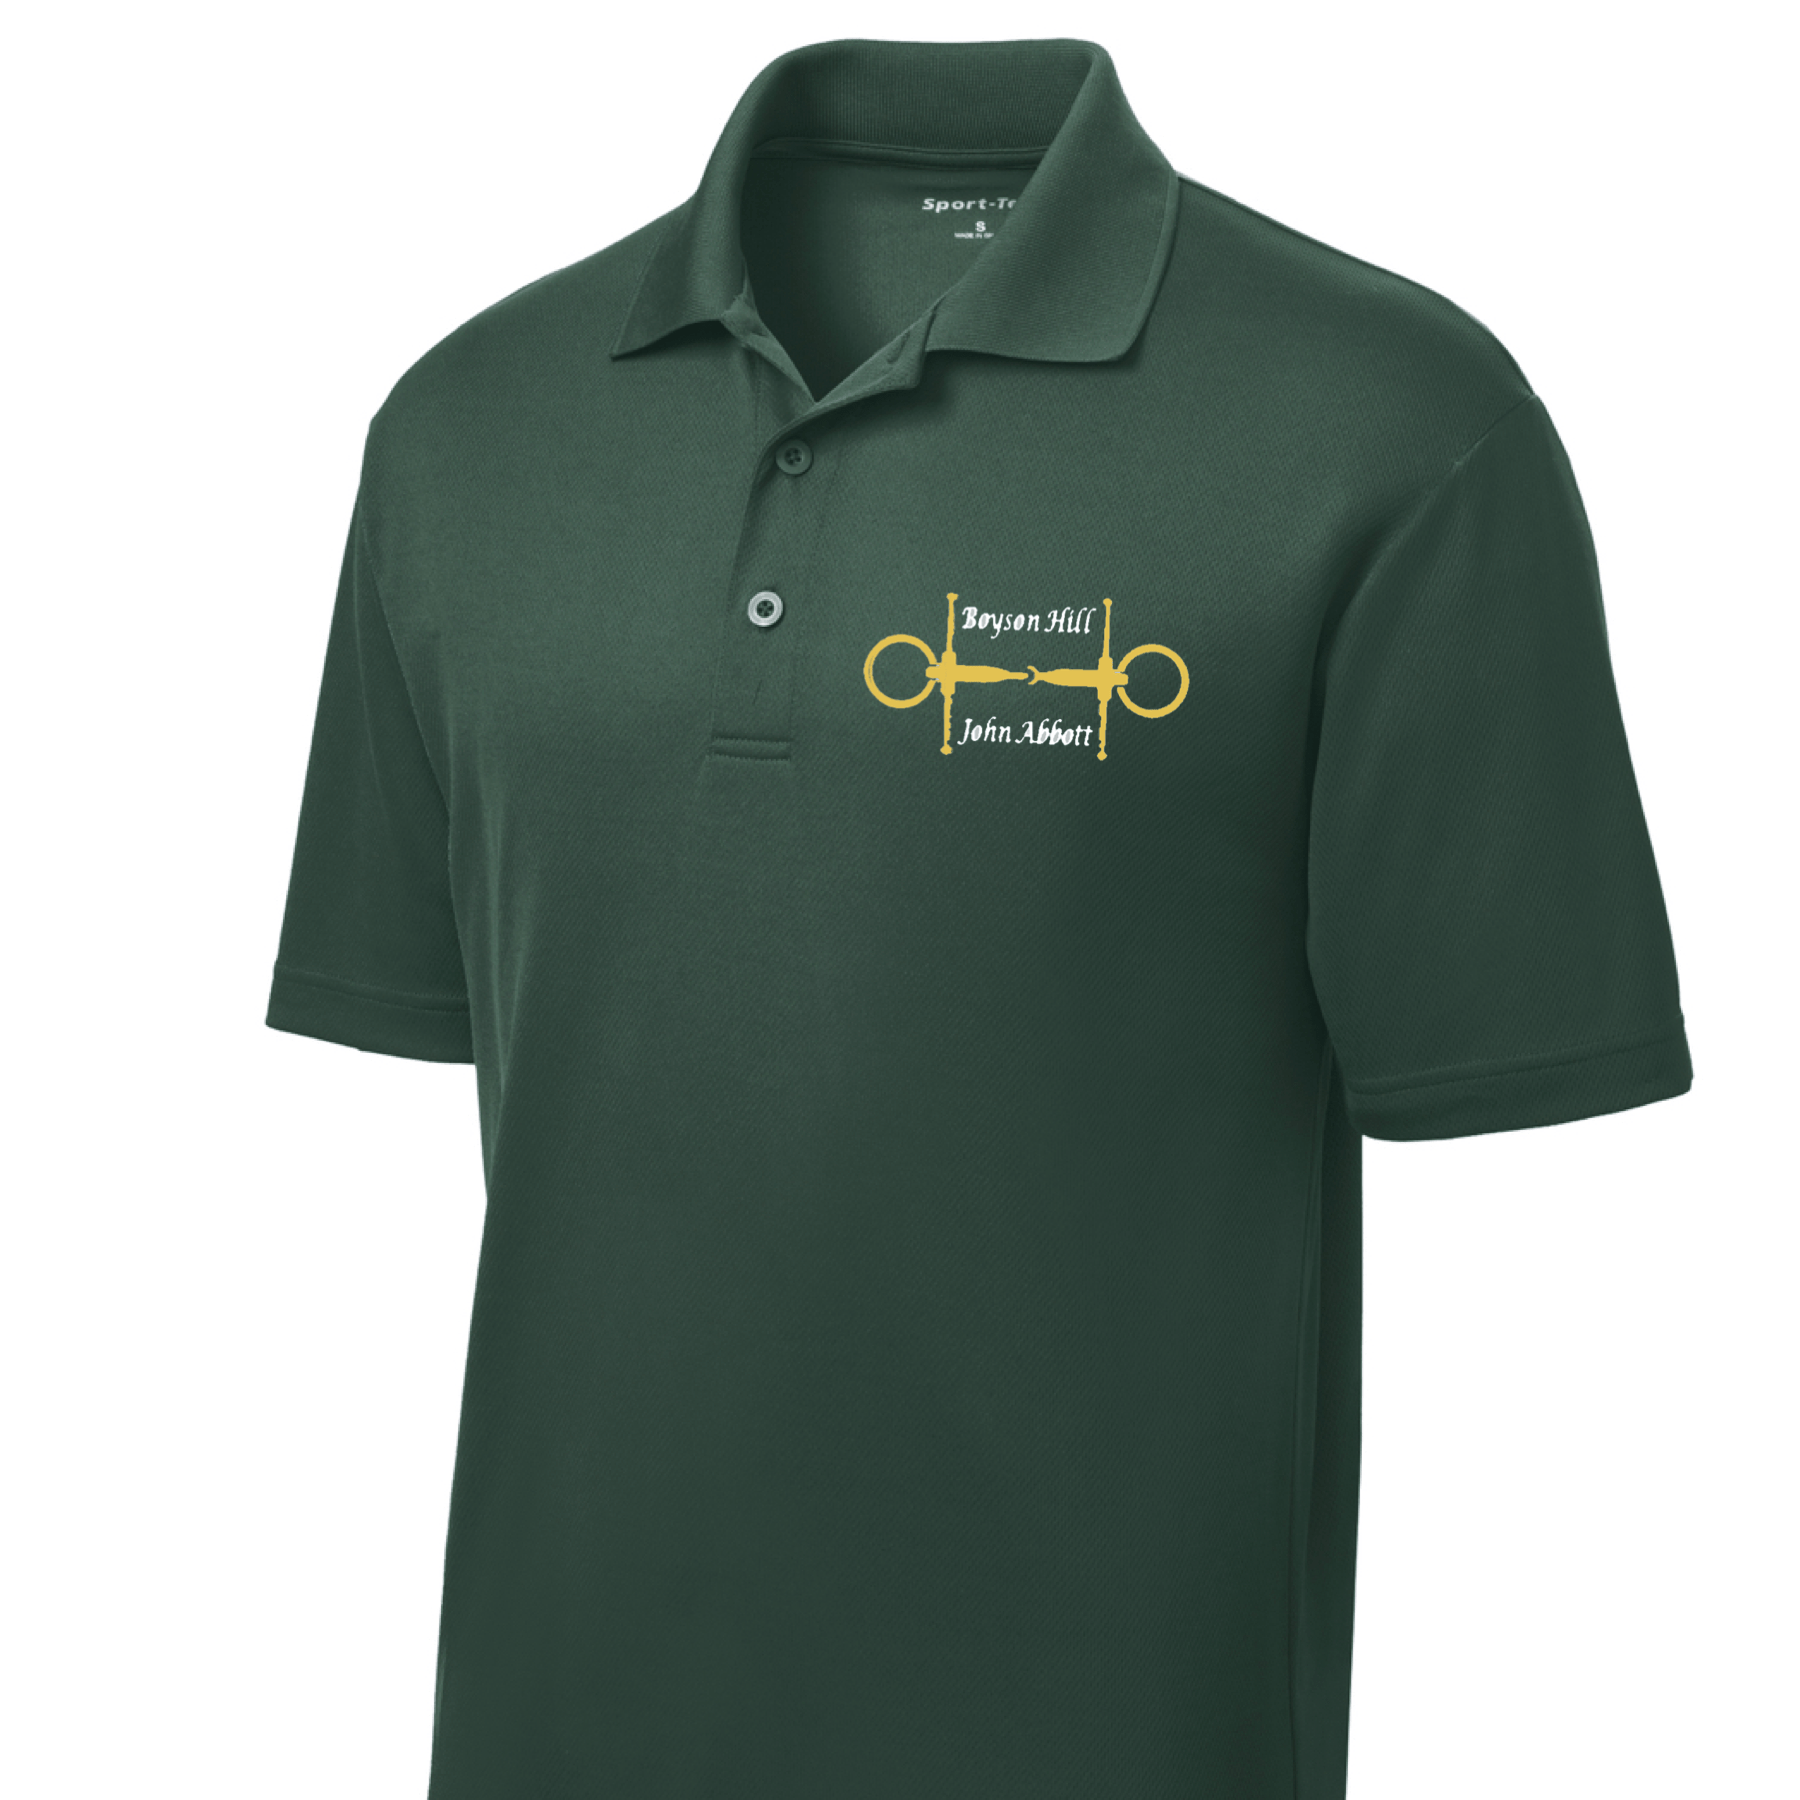 Equestrian Team Apparel Custom Team Shirts Boyson Hill Polo Shirts - Men's equestrian team apparel online tack store mobile tack store custom farm apparel custom show stable clothing equestrian lifestyle horse show clothing riding clothes horses equestrian tack store